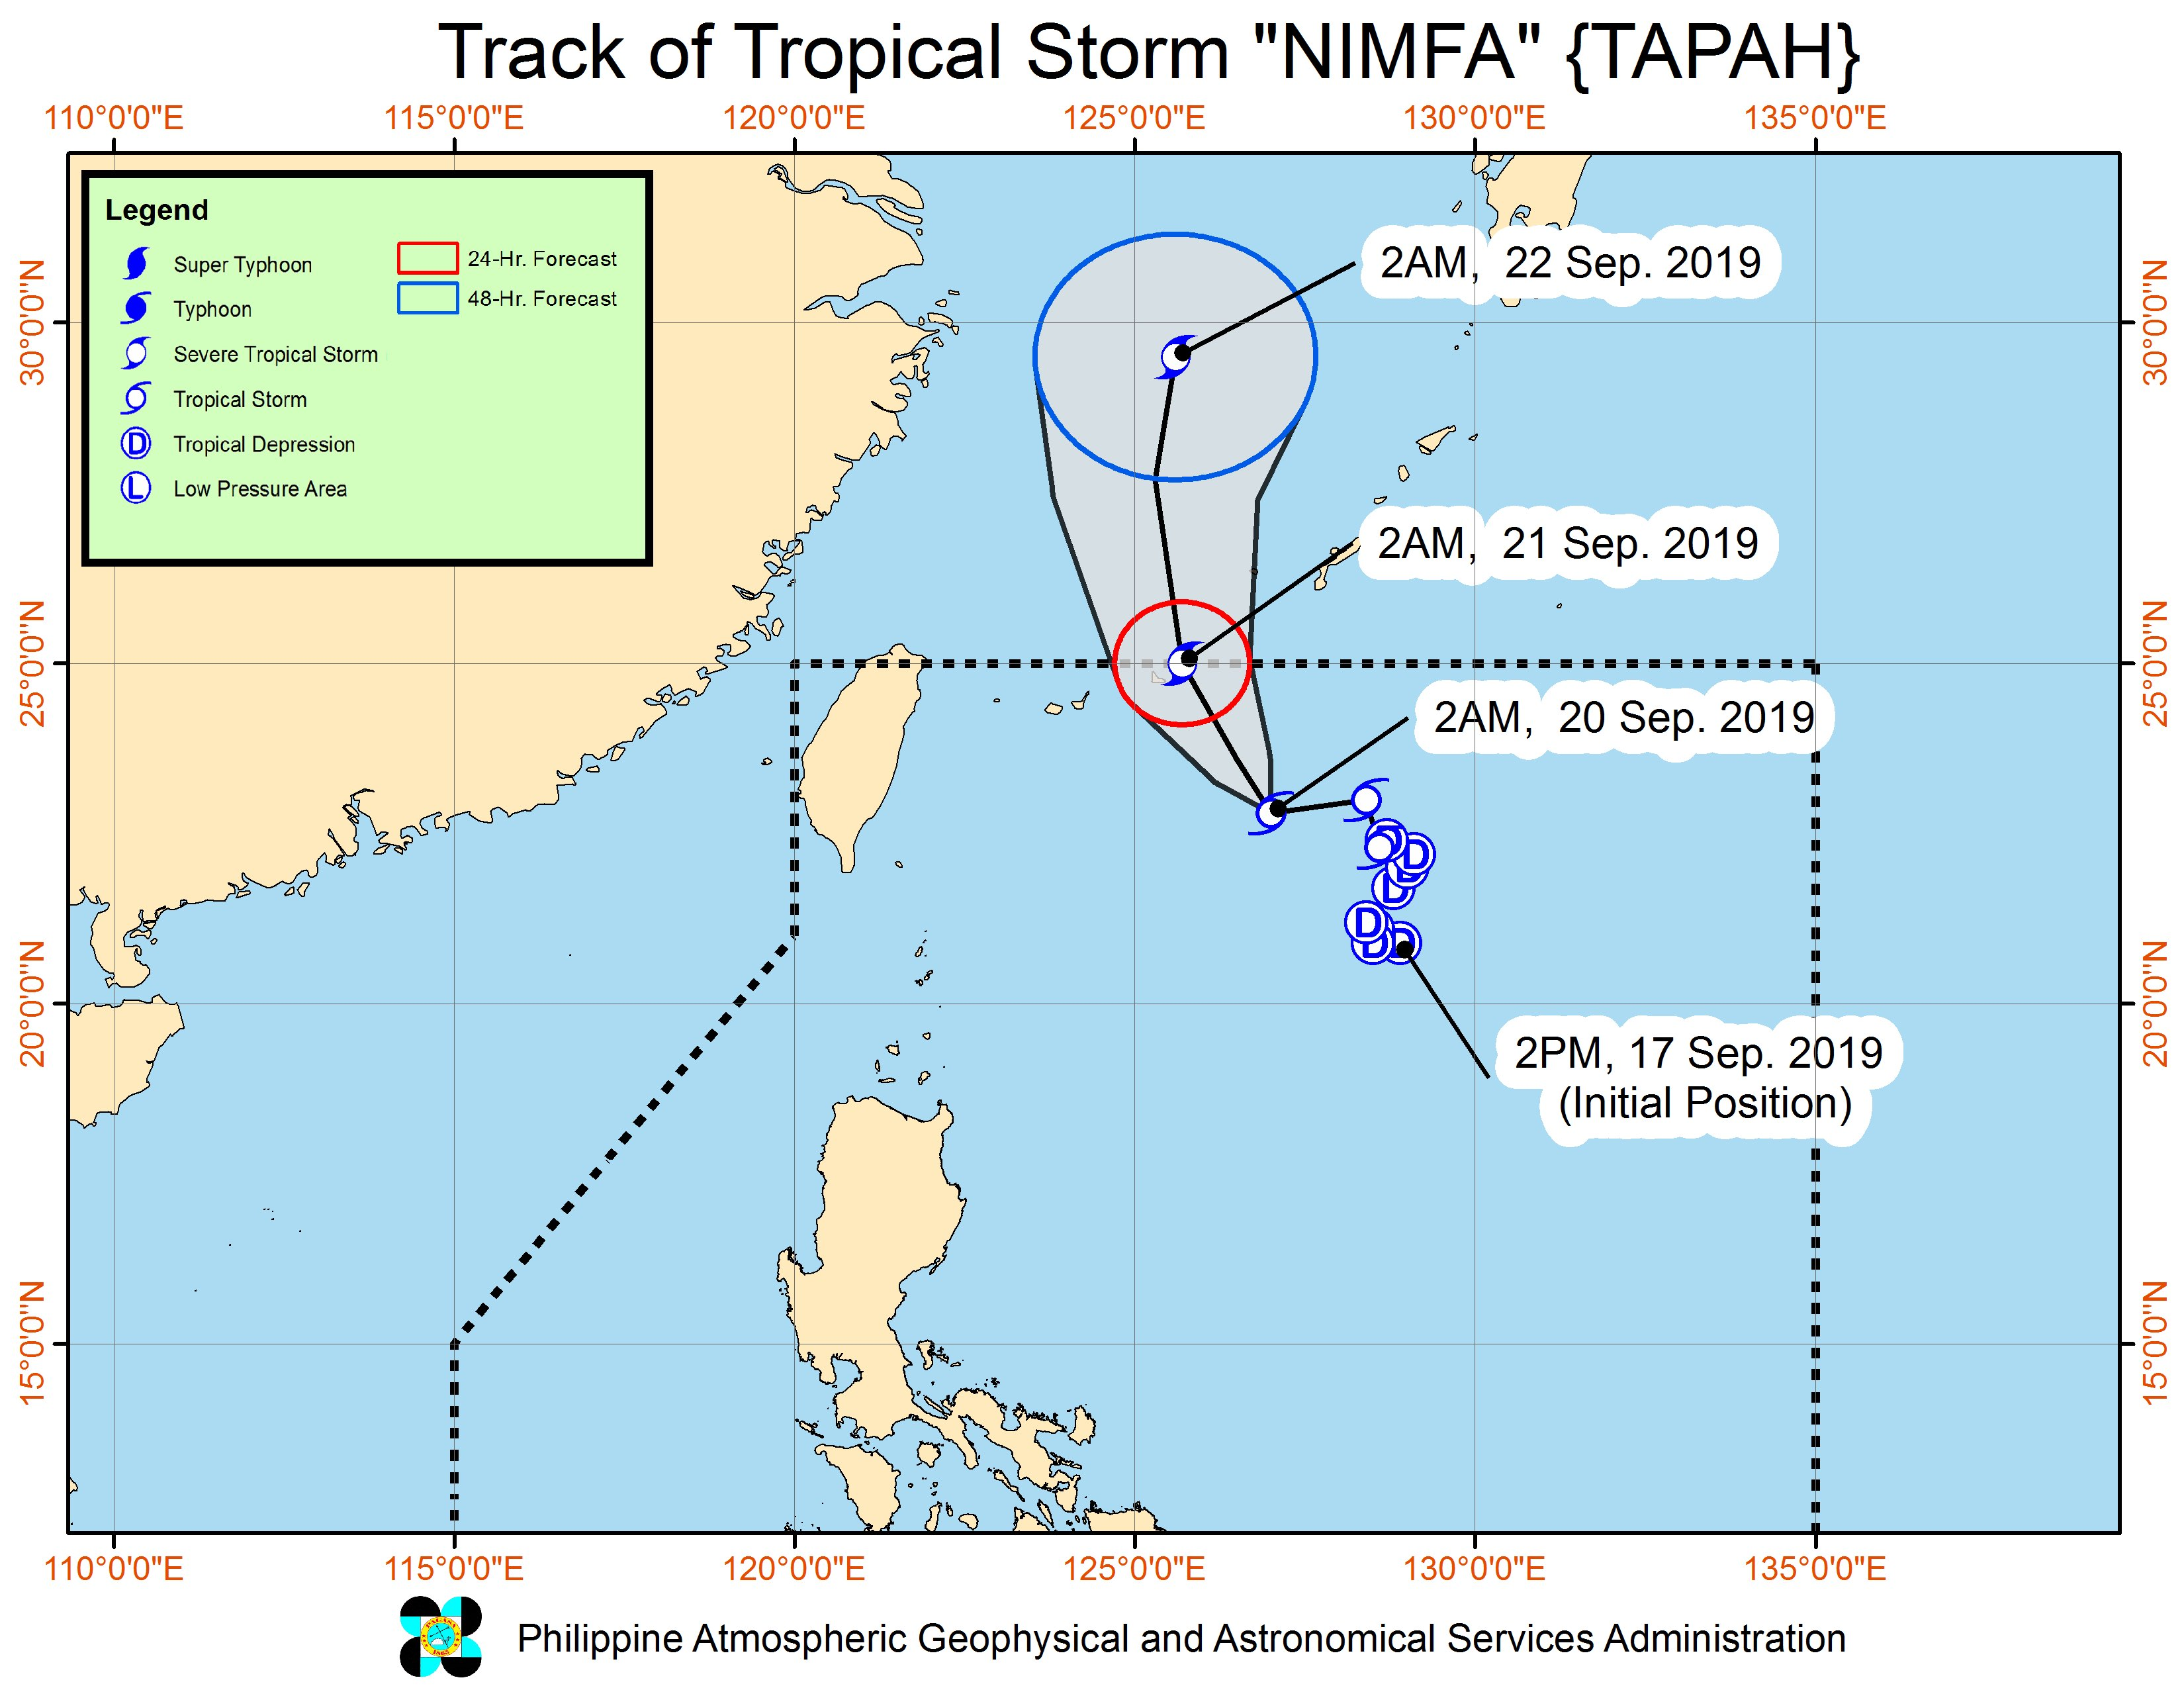 Forecast track of Tropical Storm Nimfa (Tapah) as of September 20, 2019, 5 am. Image from PAGASA